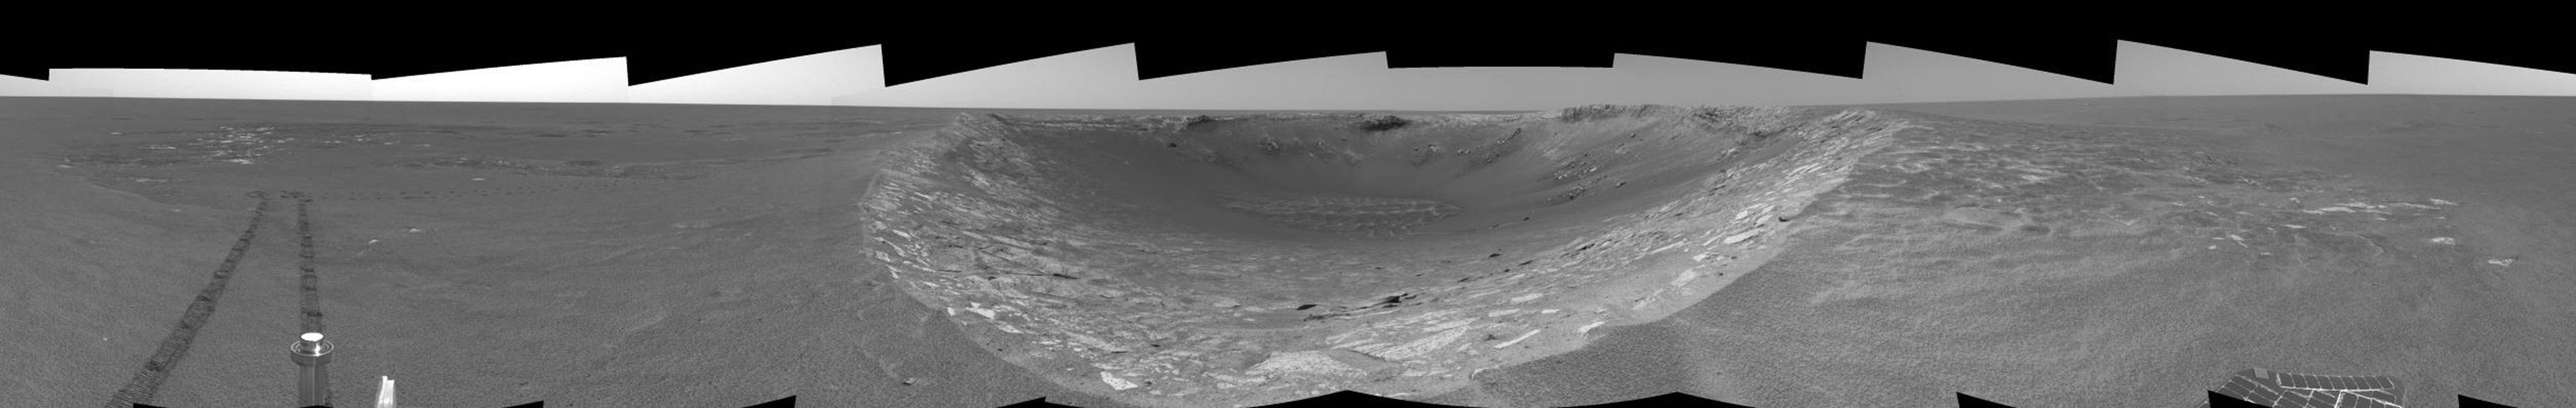 This image shows NASA's Mars Exploration Rover Opportunity along the eastern rim of 'Endurance Crater' before reaching the beginning of the 'Karatepe' area on Mars.